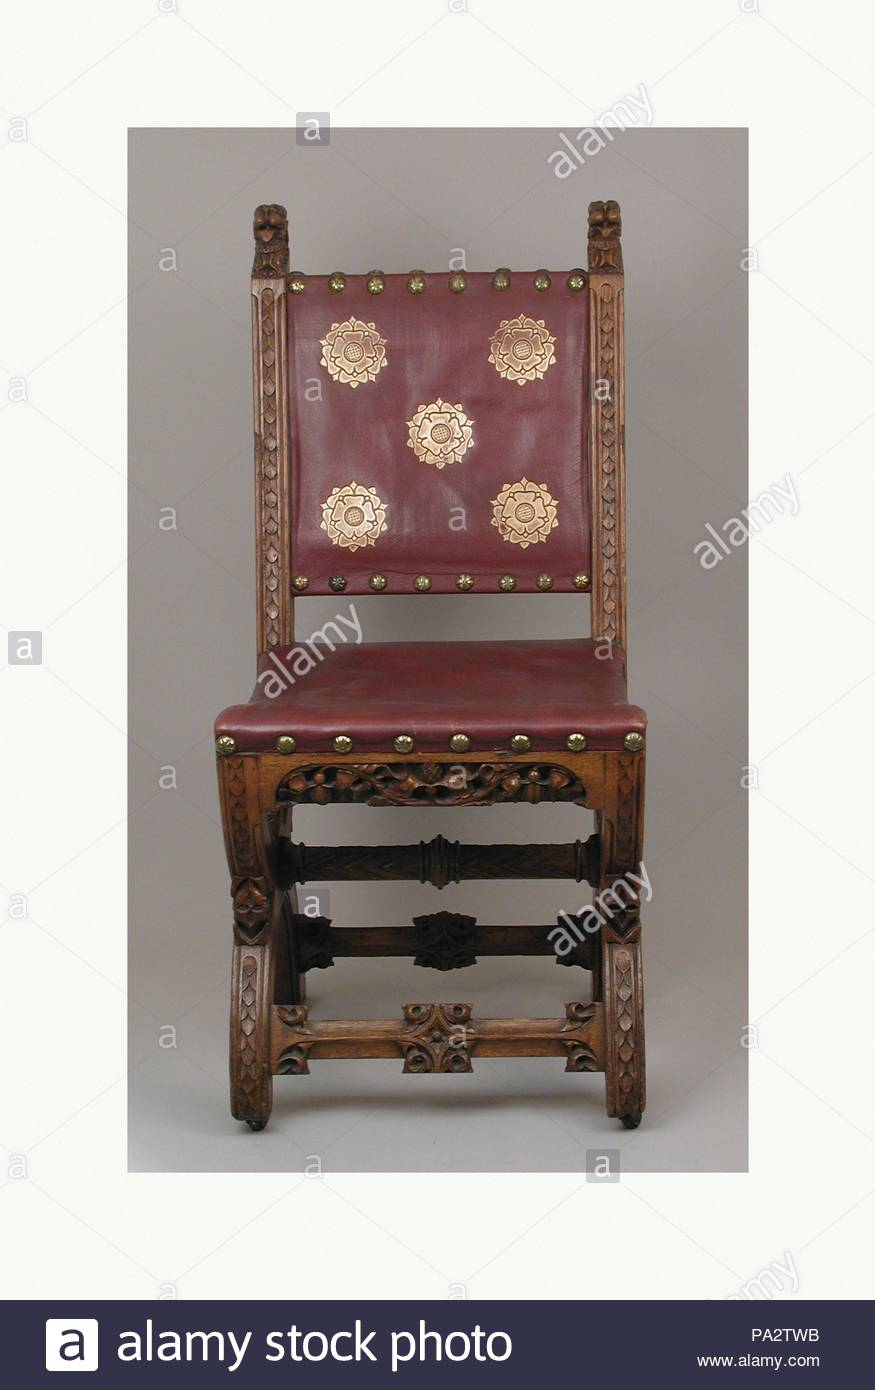 Side chair, ca. 1847, British, Carved oak, gold-stamped leather; metal casters, Overall (confirmed): 39 1/2 × 17 3/4 × 22 in. (100.3 × 45.1 × 55.9 cm), Woodwork-Furniture, John Webb (British, 1799–1880), This chair comes from the Palace of Westminster which was rebuilt after a devastating fire in 1834 by Charles Barry. Having won the competition to design the building in a Gothic style, Barry was assisted by A. - Stock Image